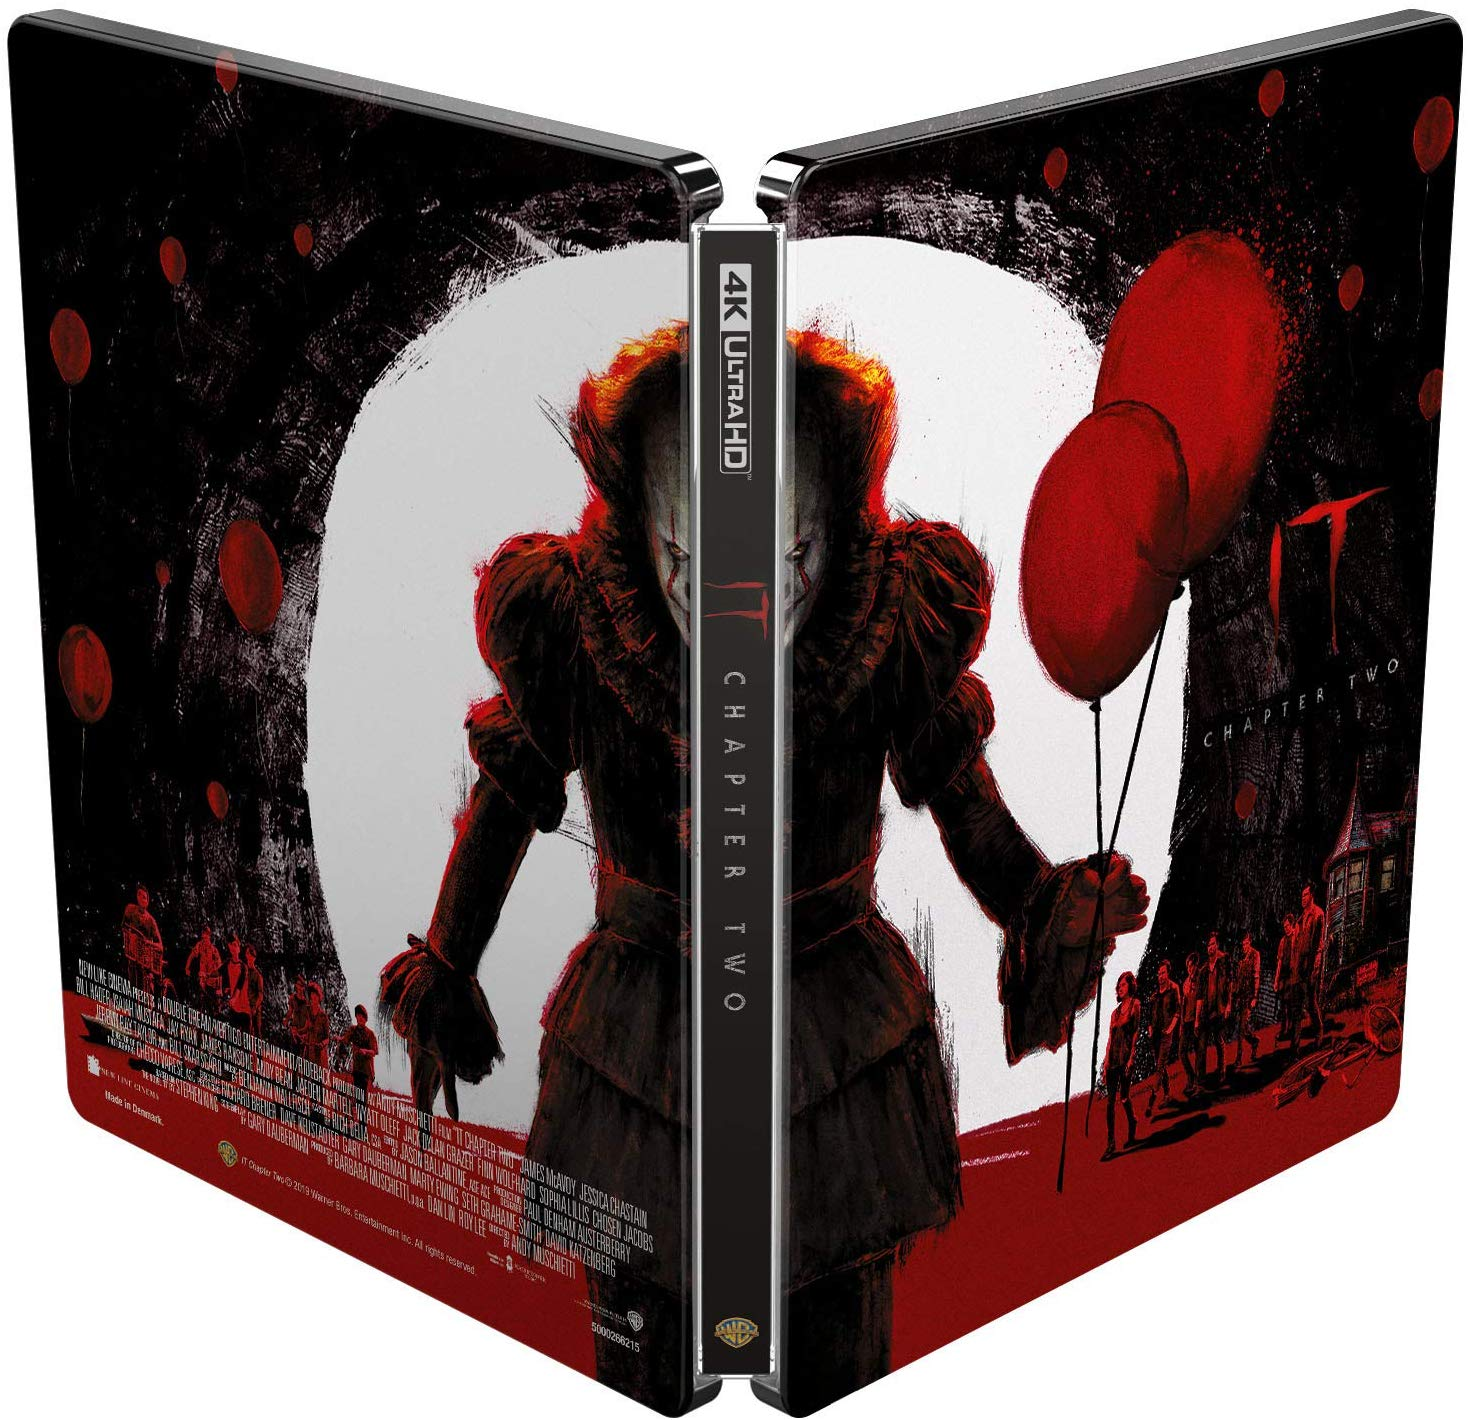 IT Chapter Two Steelbook Back and Front